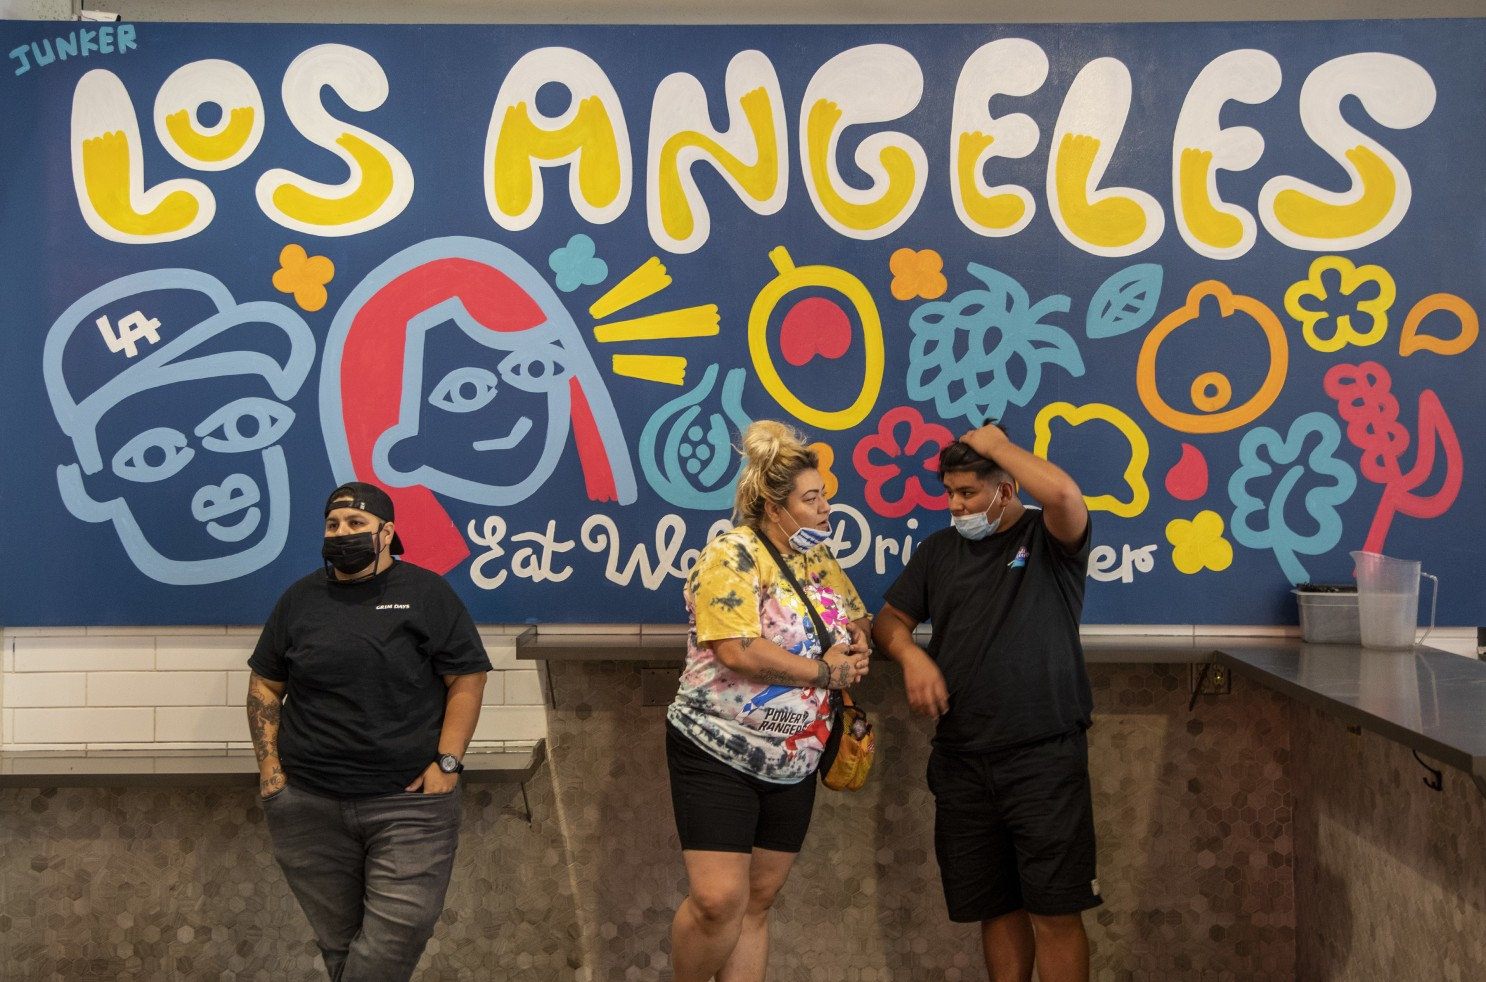 California officials urge people to wear masks inside closed spaces